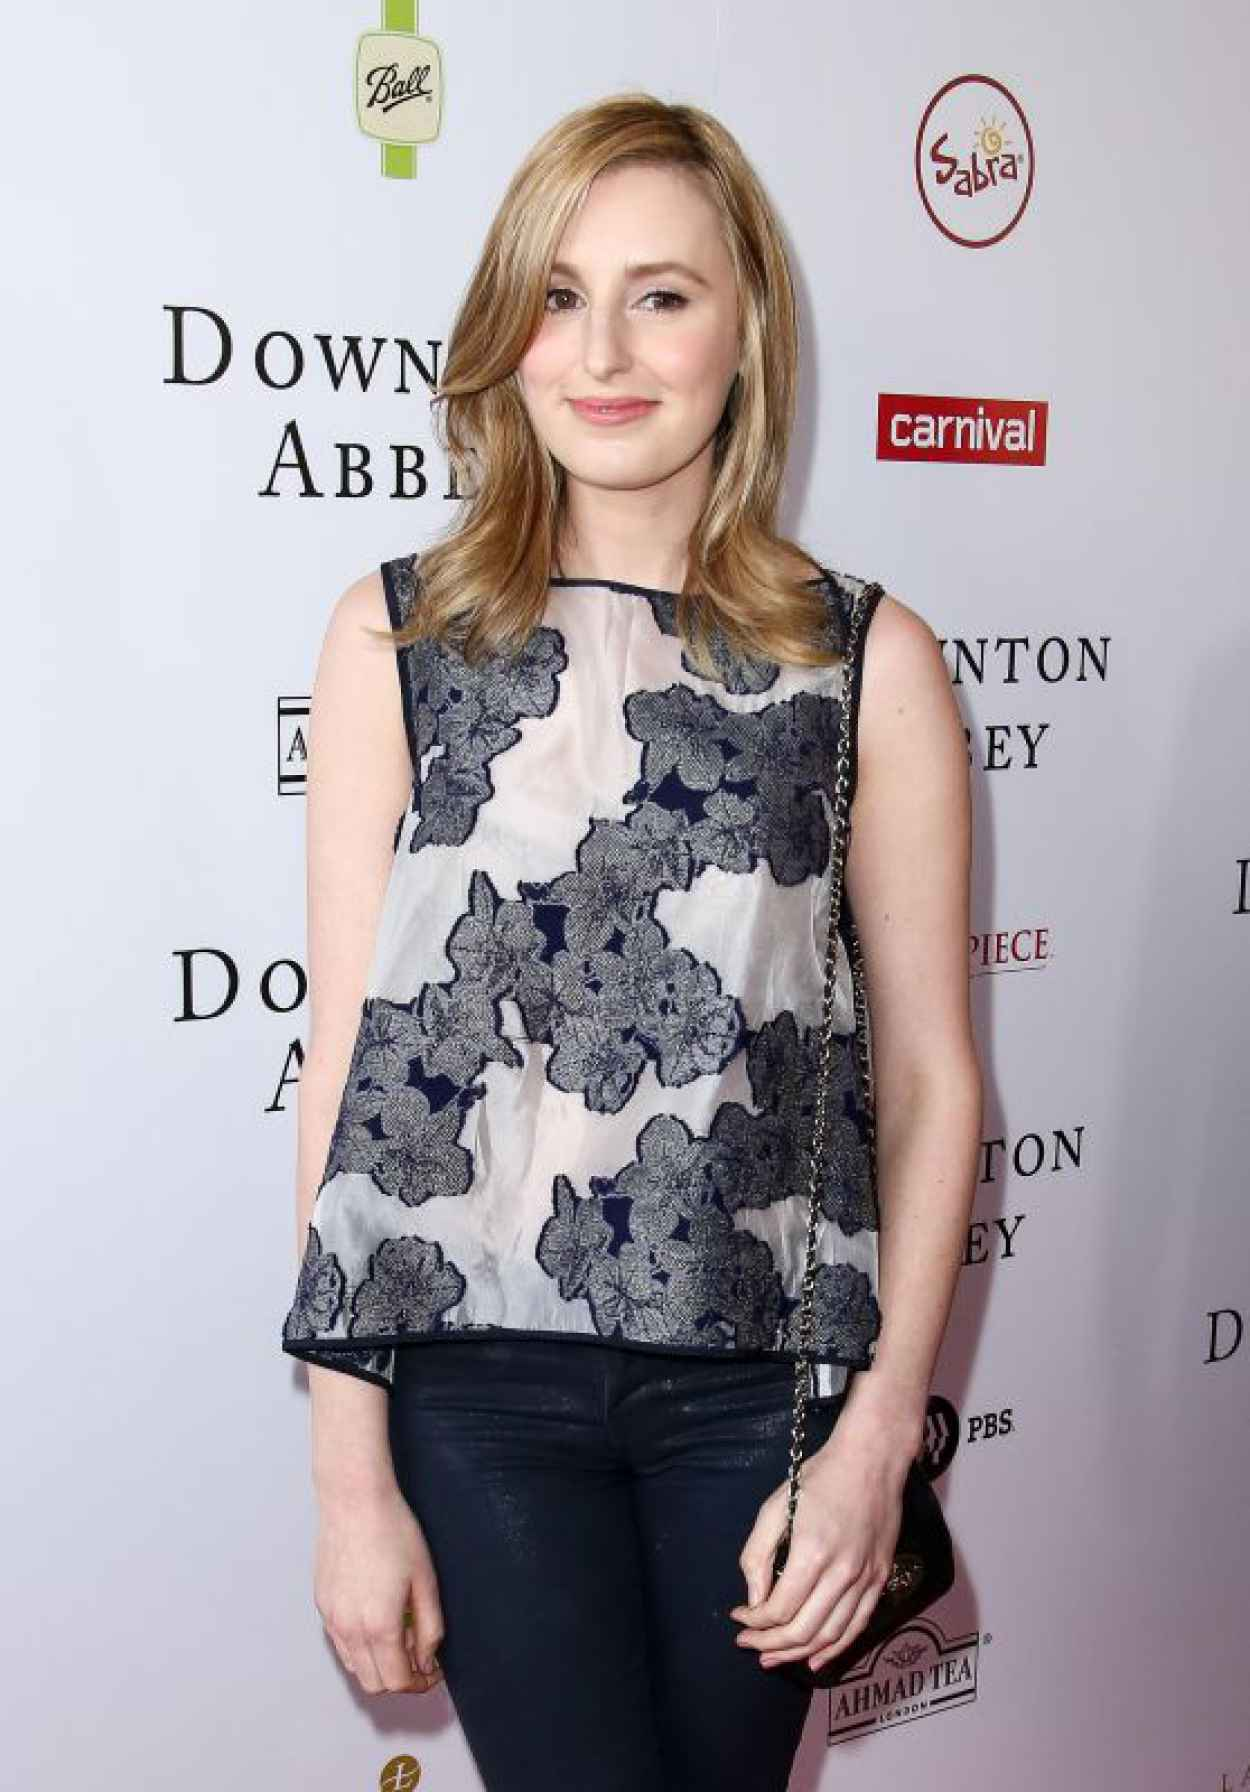 Laura Carmichael - An Afternoon With Downton Abbey Talent Panel Q&A in Beverly Hills-1